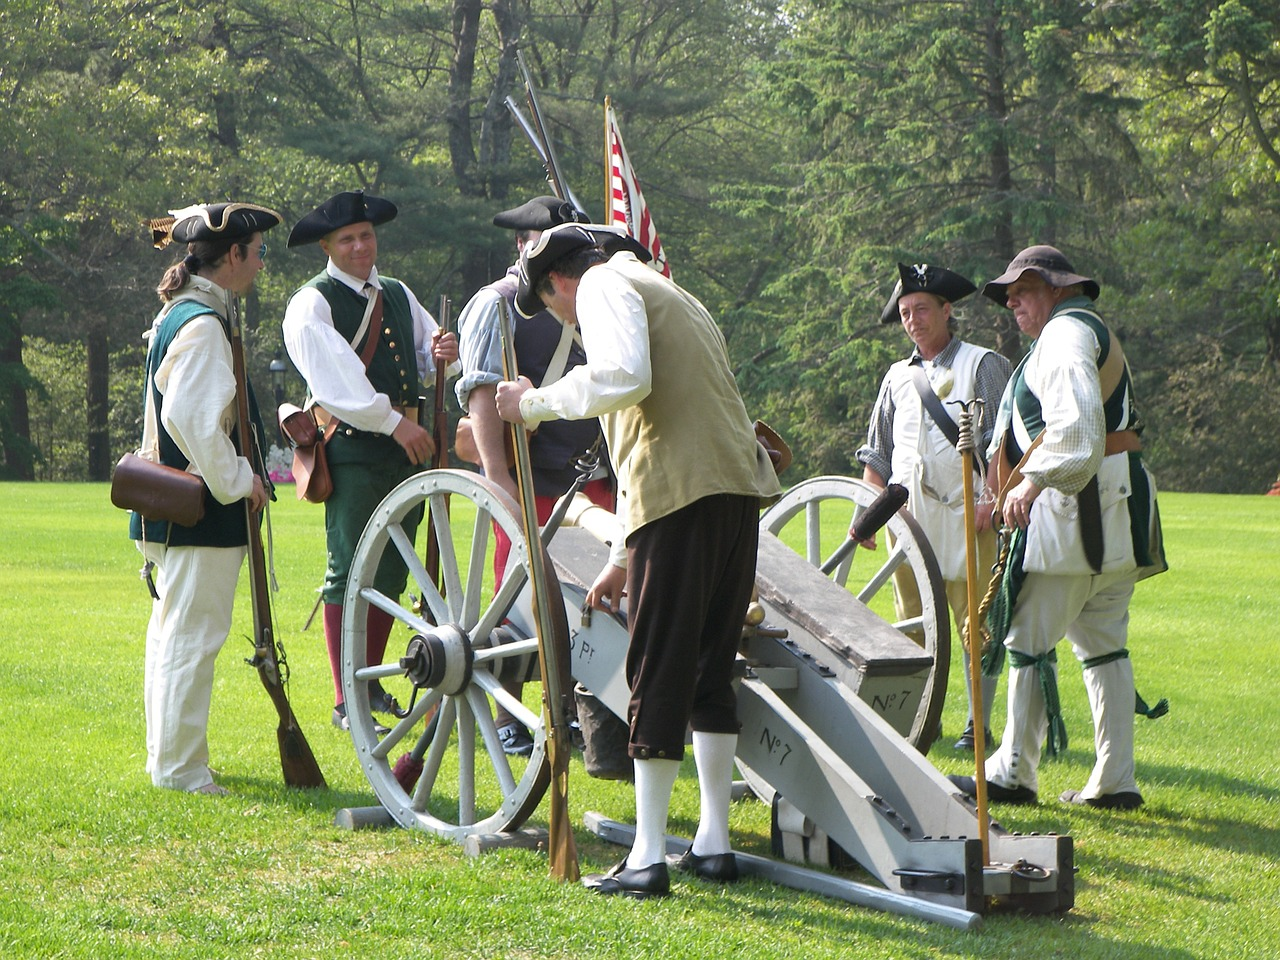 revolutionary war historical free photo